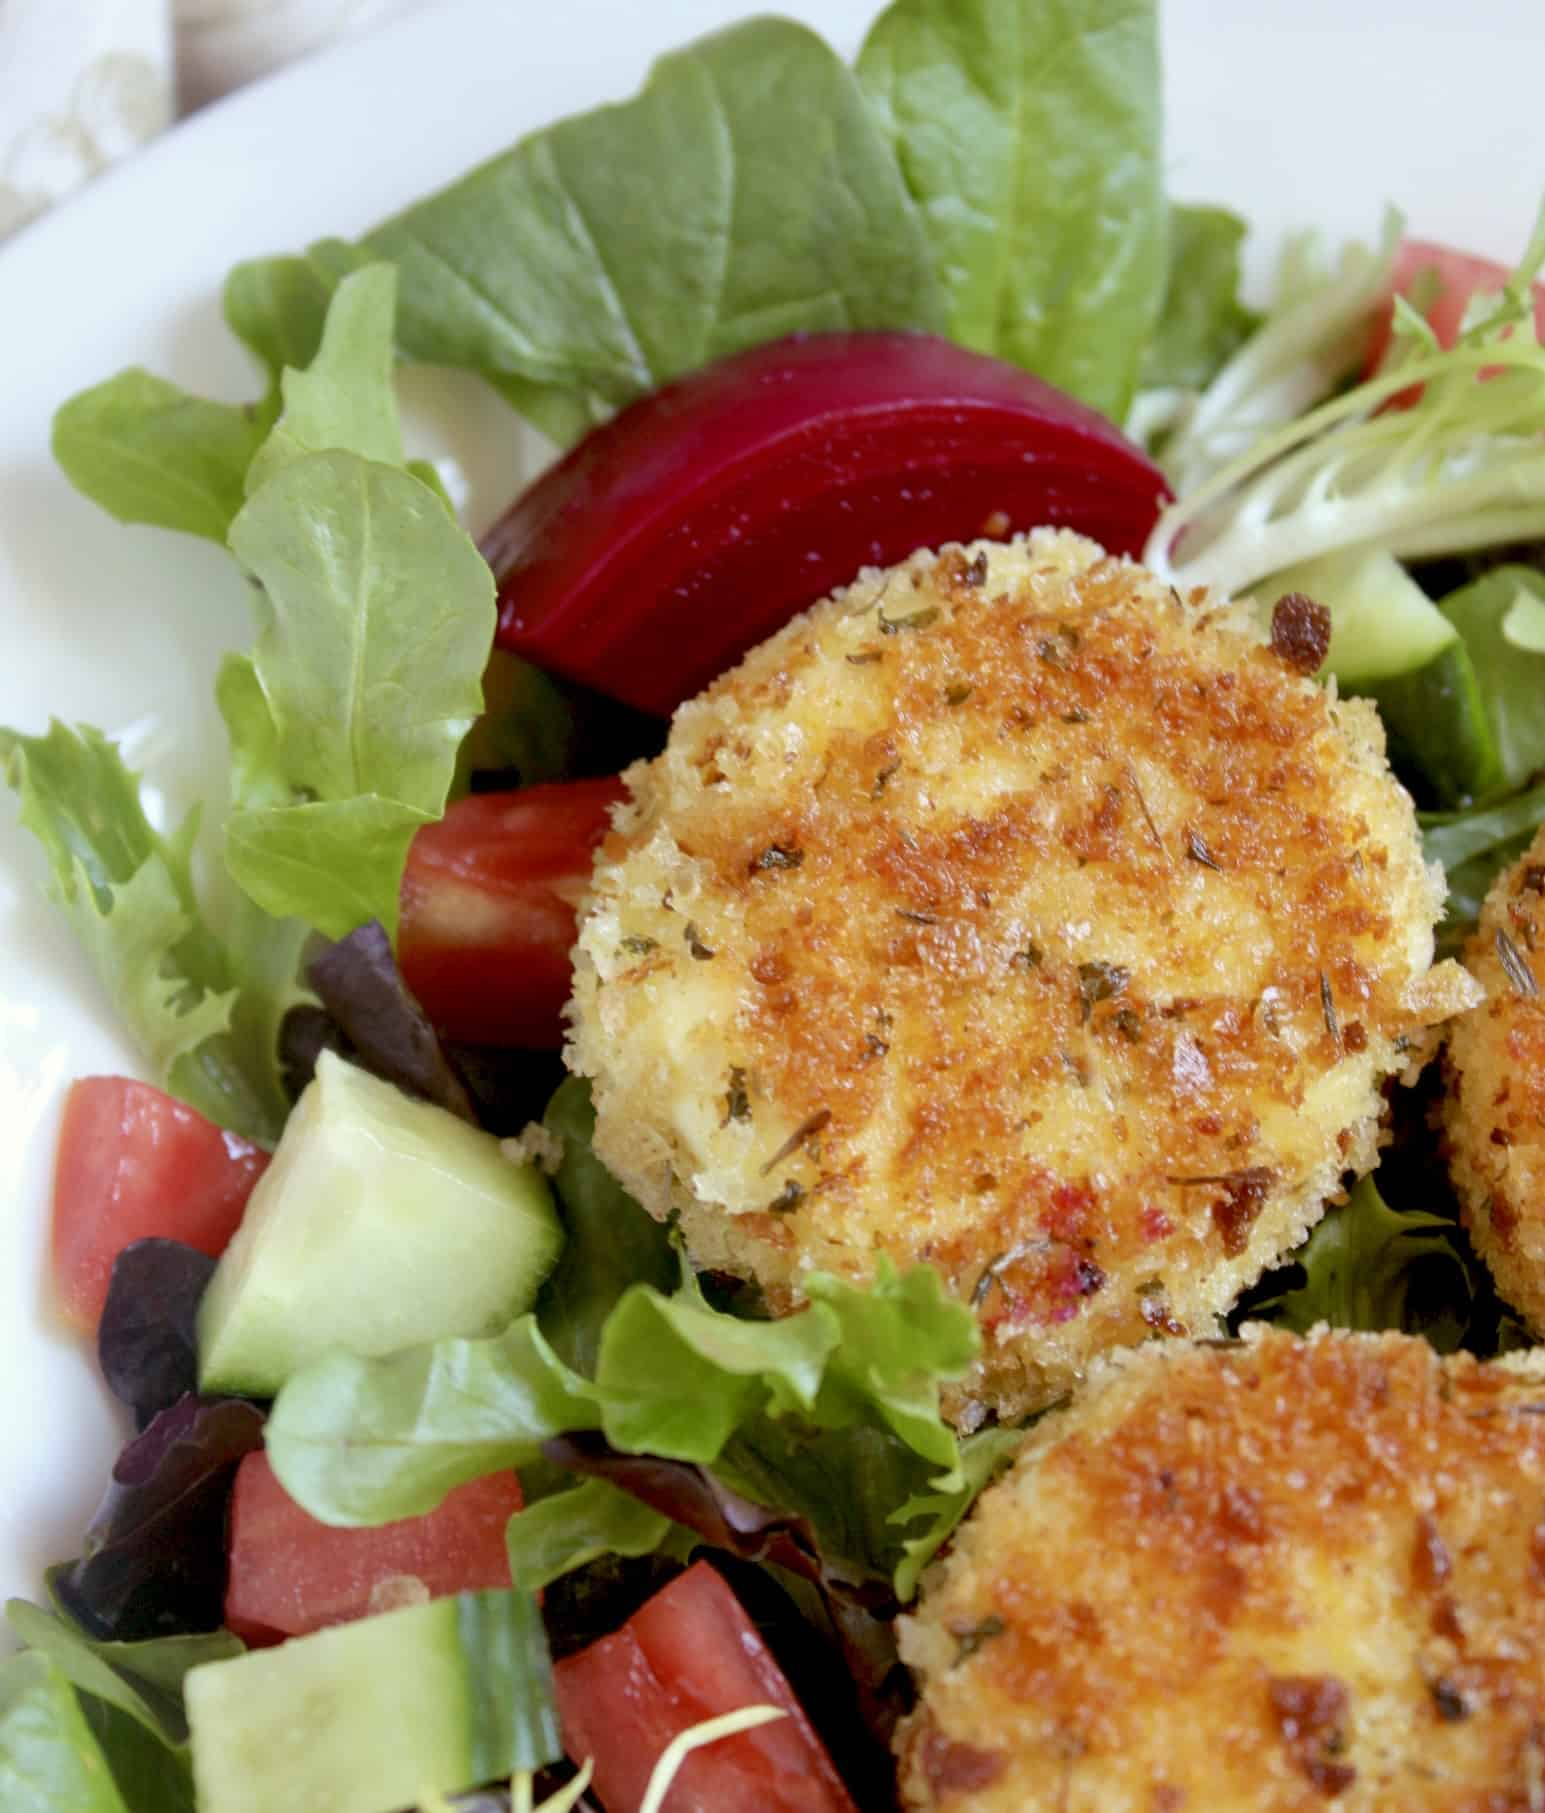 salad with vegetables and breaded cheese rounds